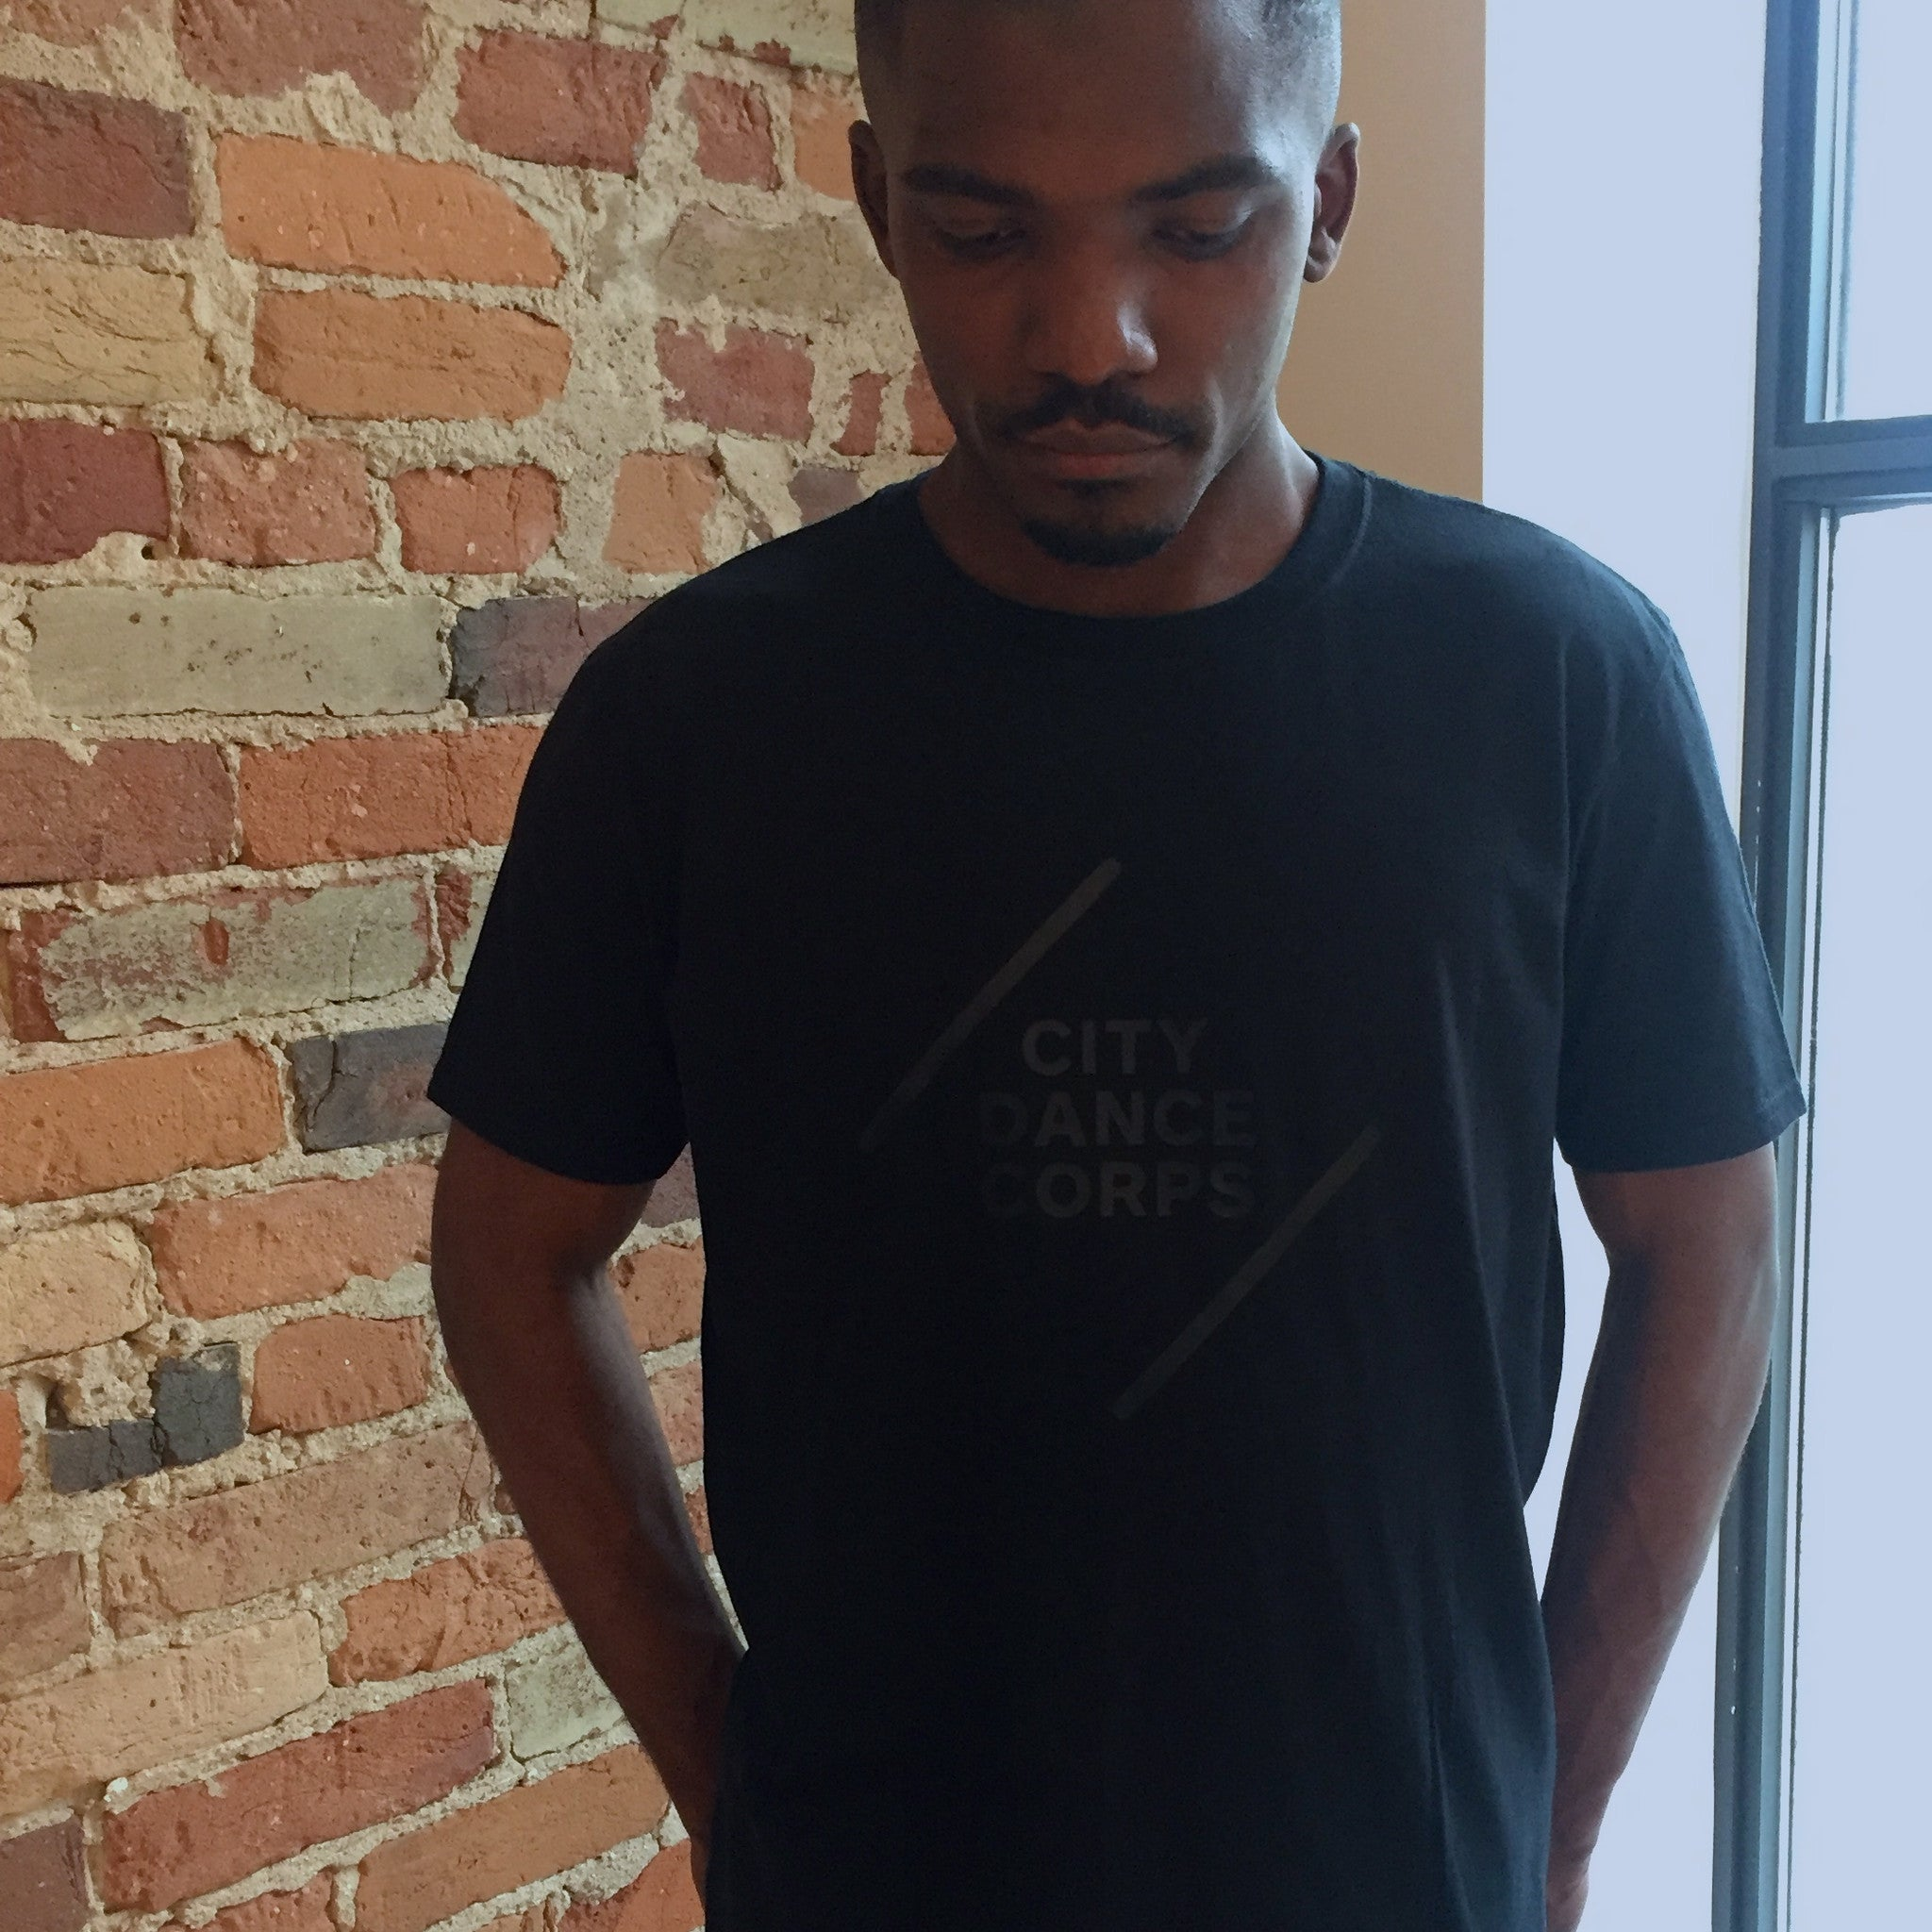 CDC All Black Everything Tee